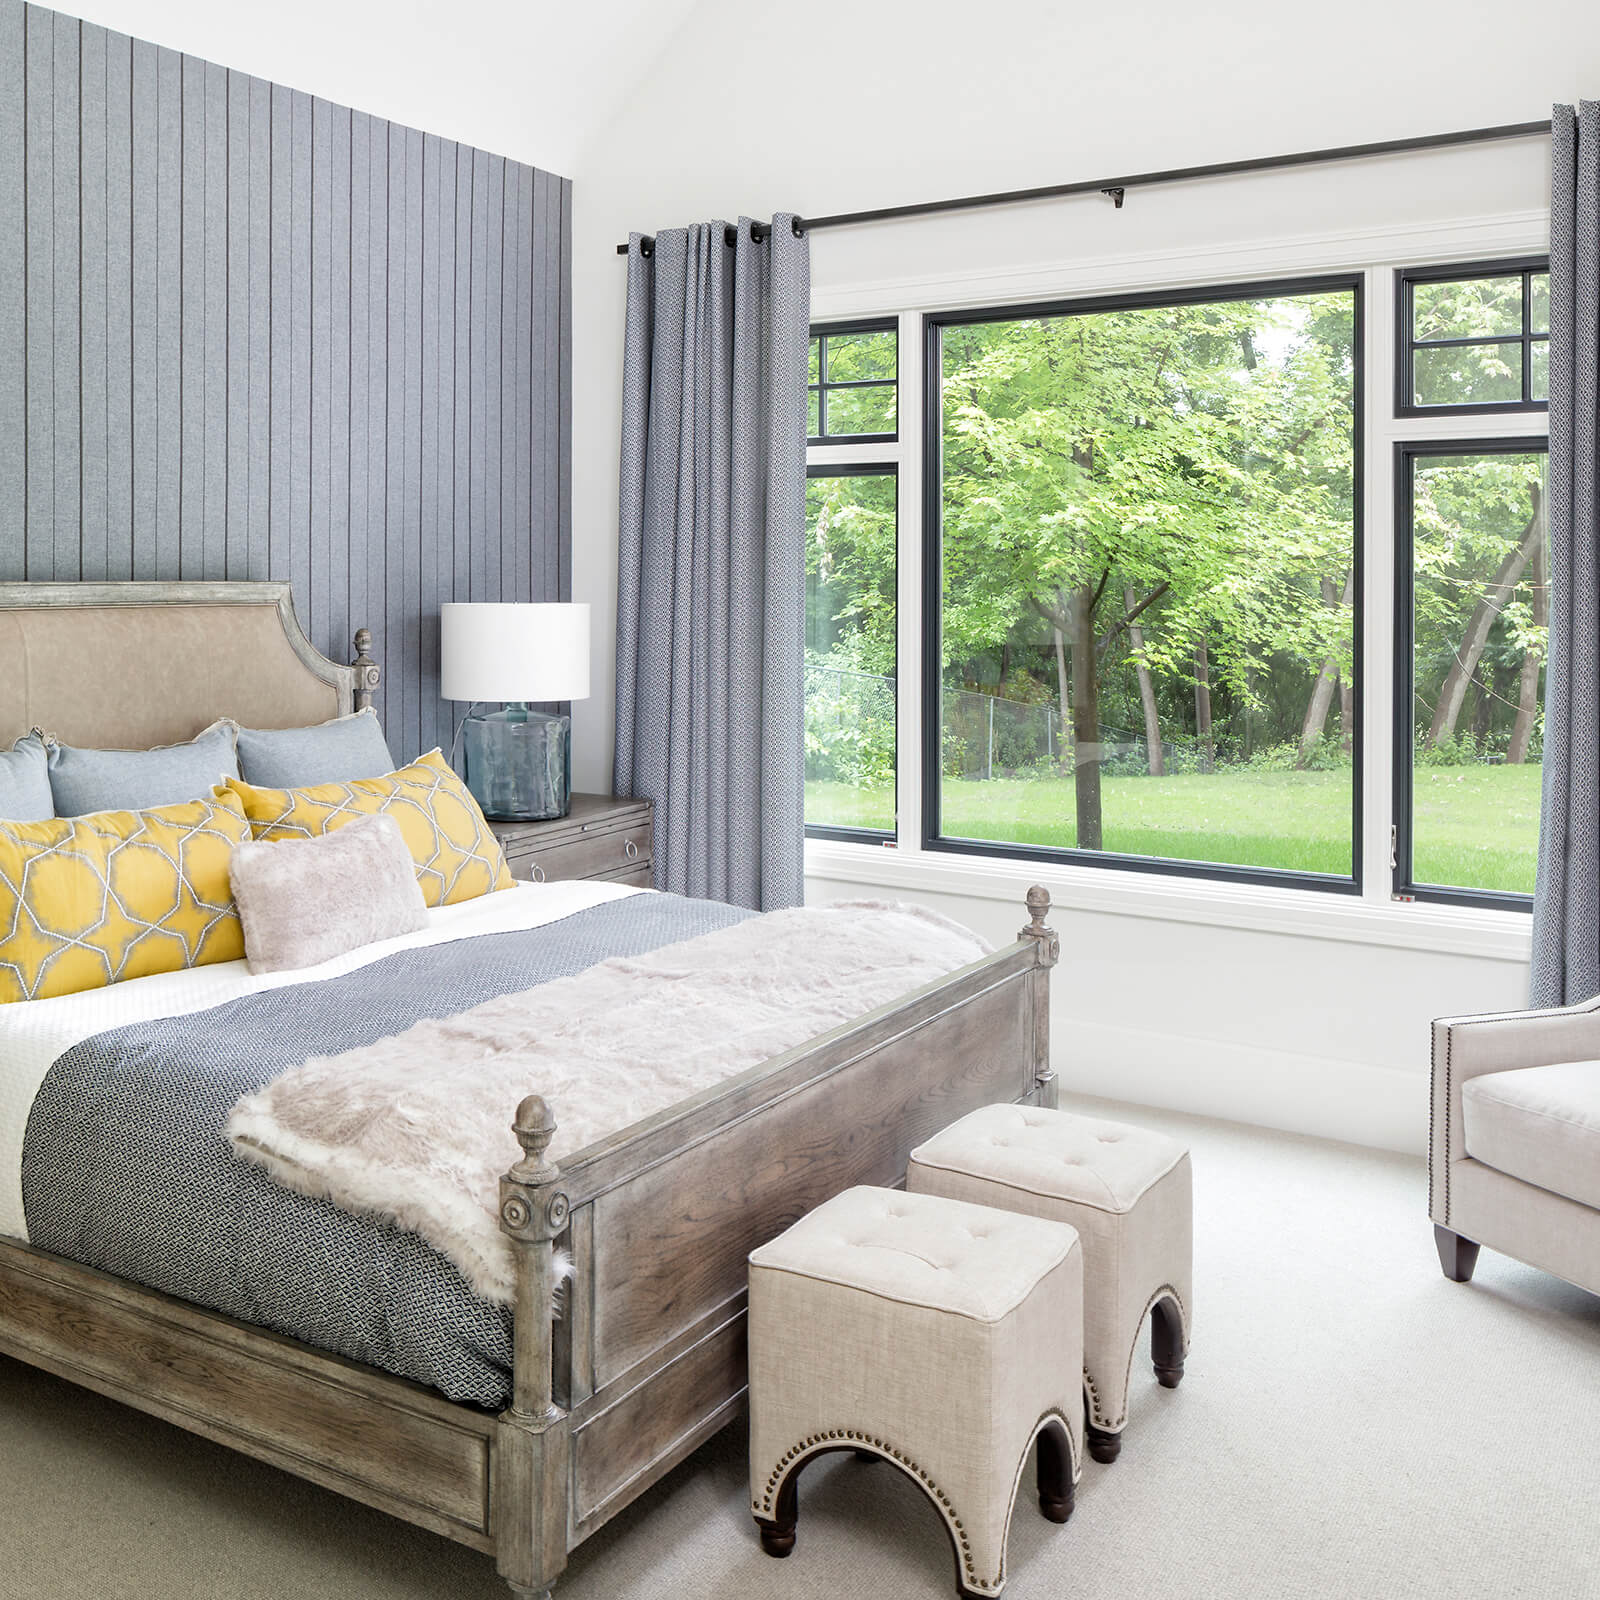 Bedroom with Marvin Signature Ultimate Casement Windows